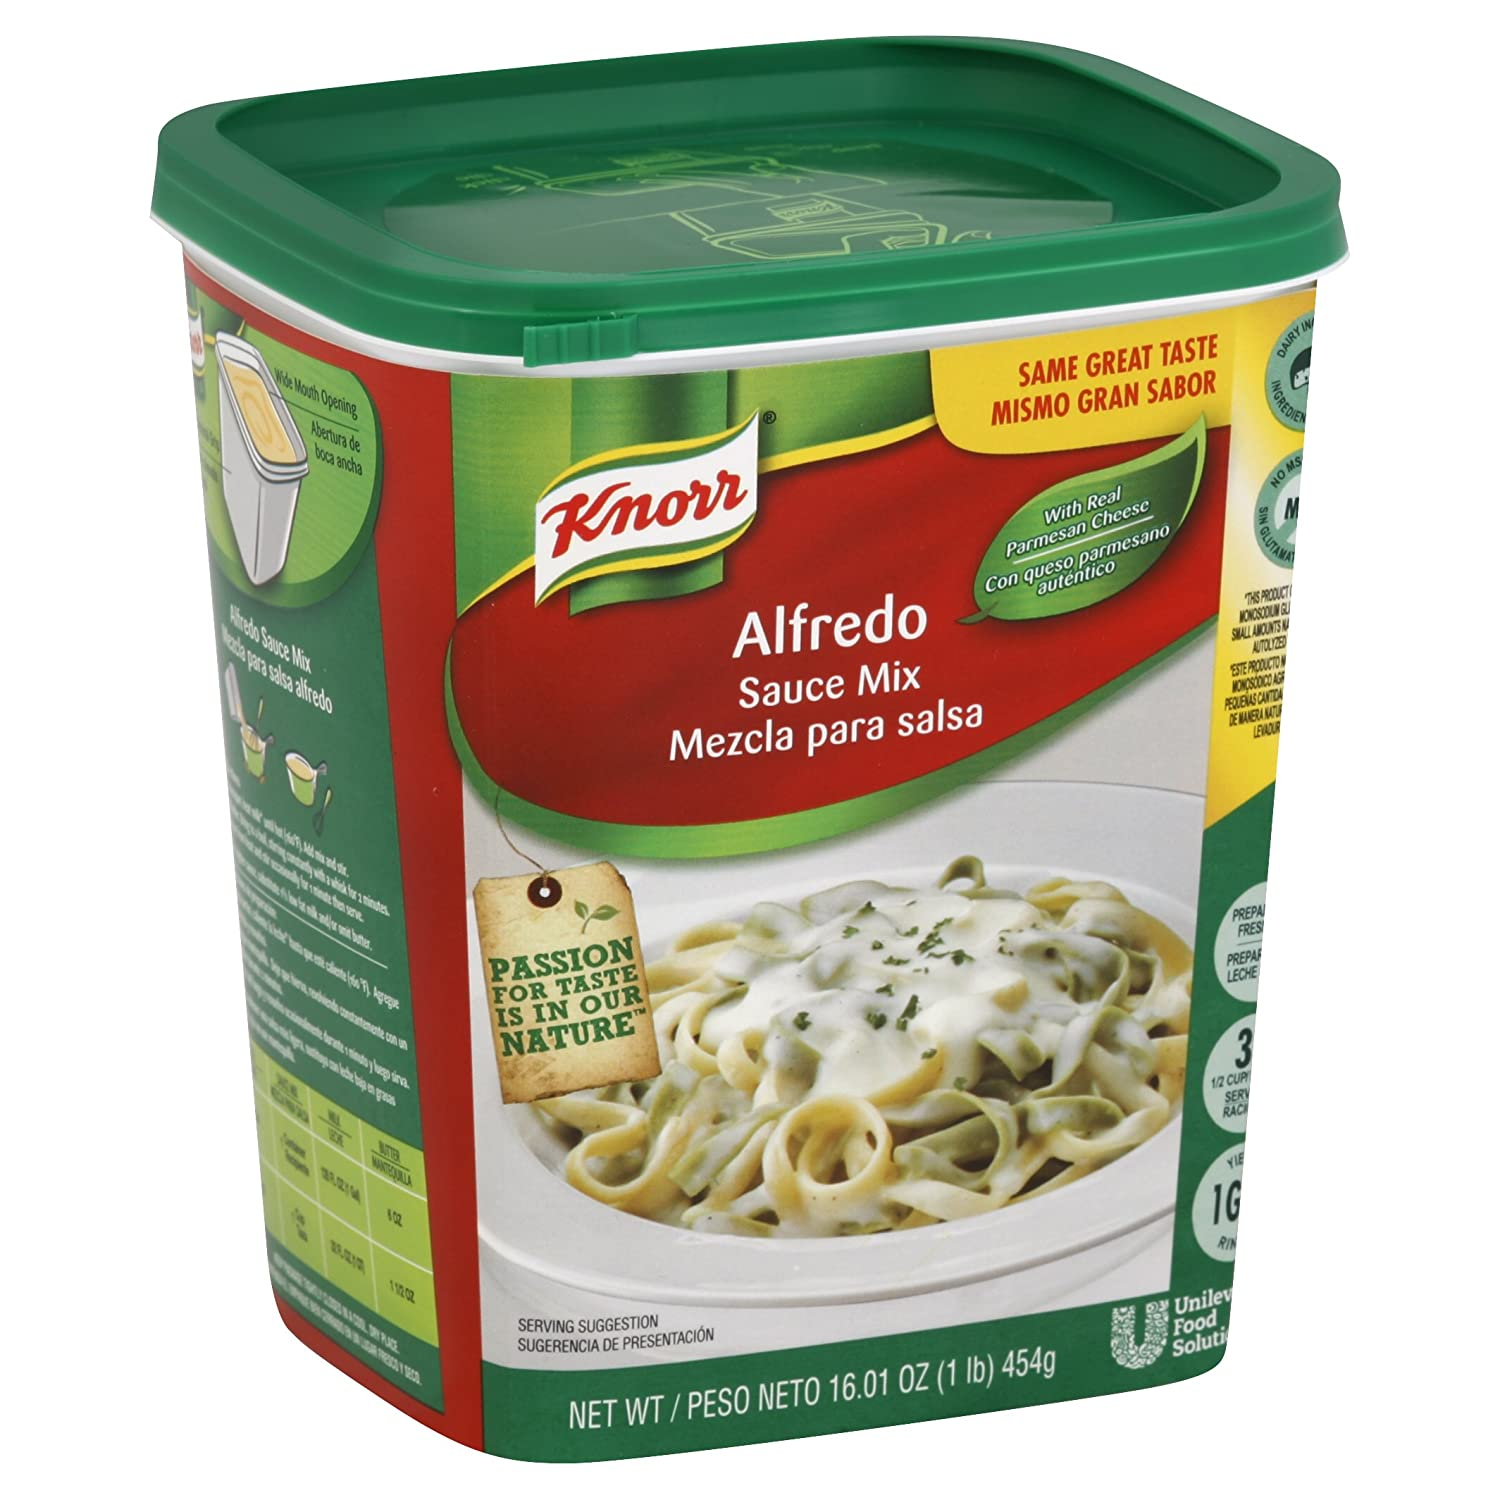 Amazon.com : Knorr Sauce Mix Alfredo 1 lb, Pack of 4 : Grocery & Gourmet Food